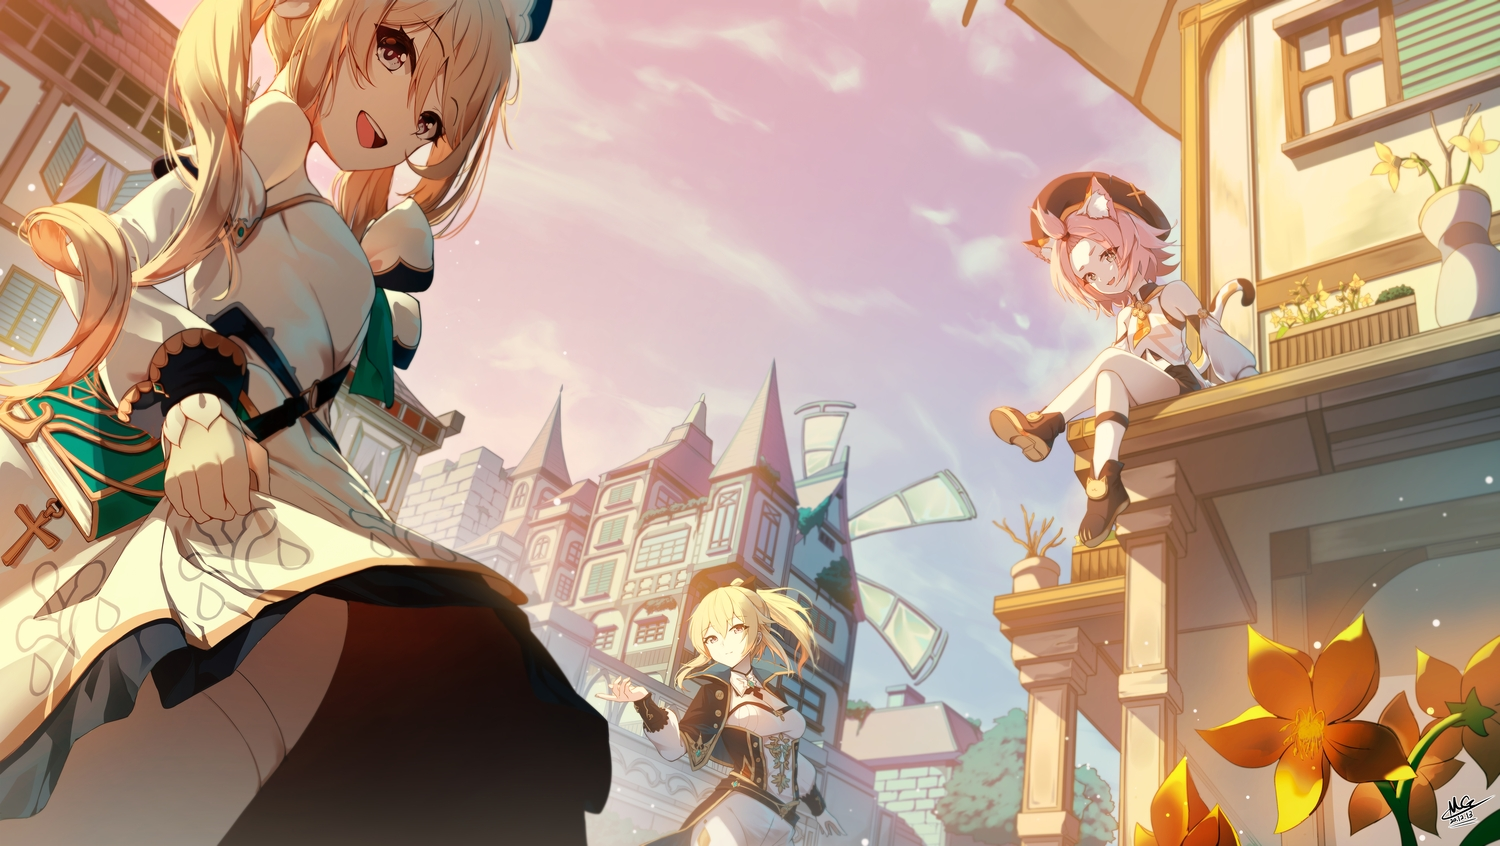 animal_ears barbara_pegg blonde_hair building catgirl cat_smile city clouds diona_(genshin_impact) flowers genshin_impact jean_gunnhildr long_hair magica ponytail signed sky tail twintails windmill